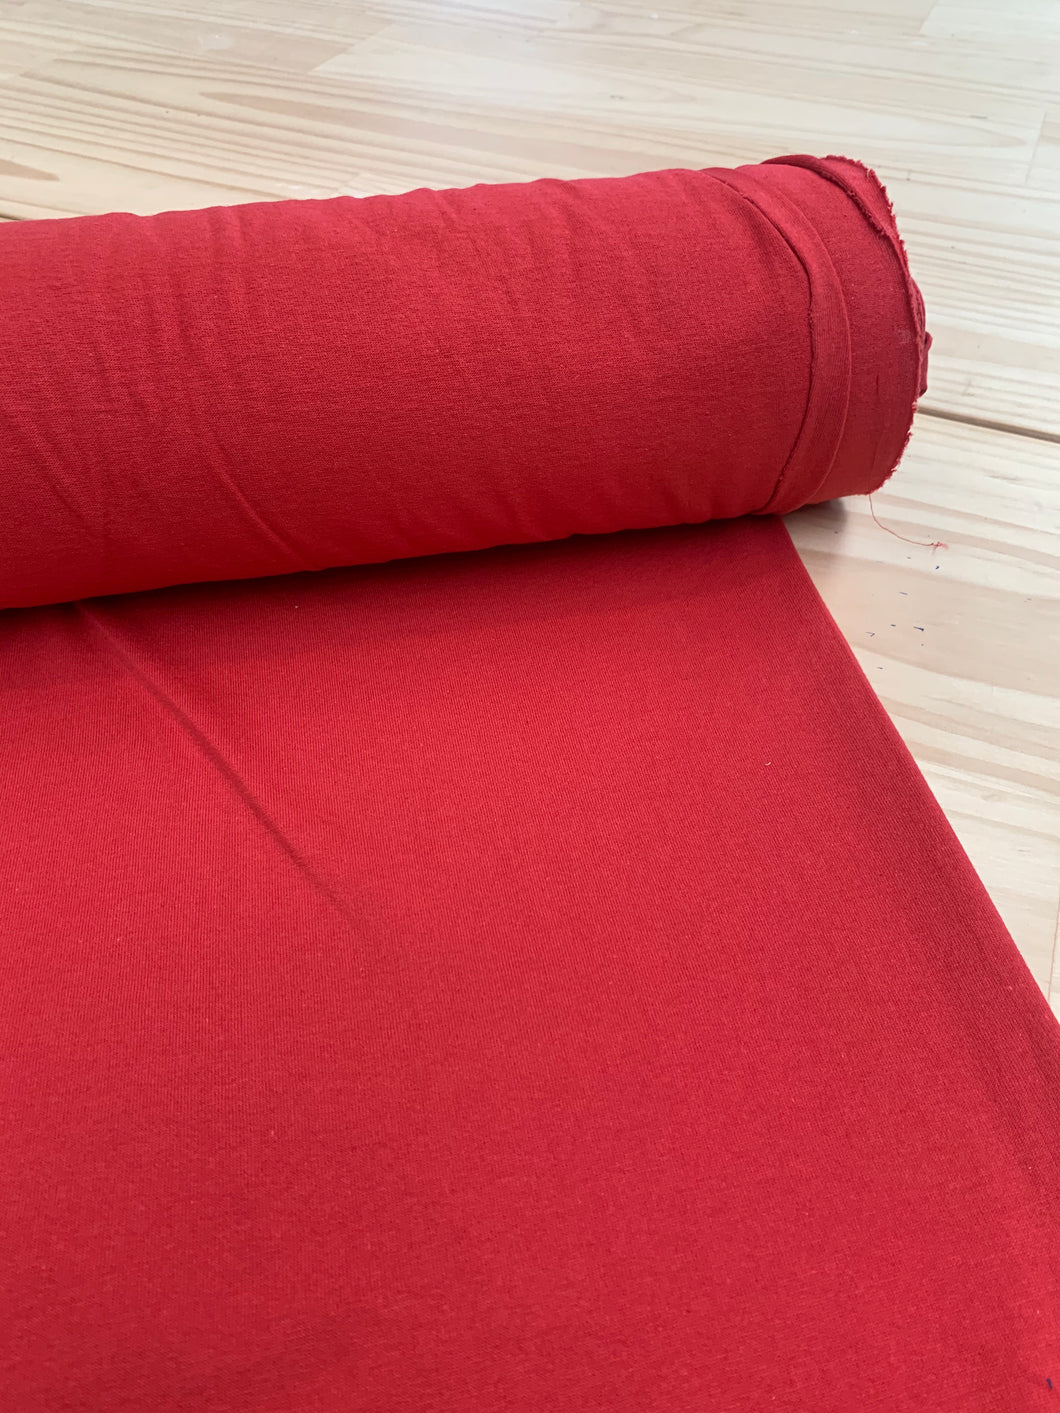 Cherry Red stretch fabric